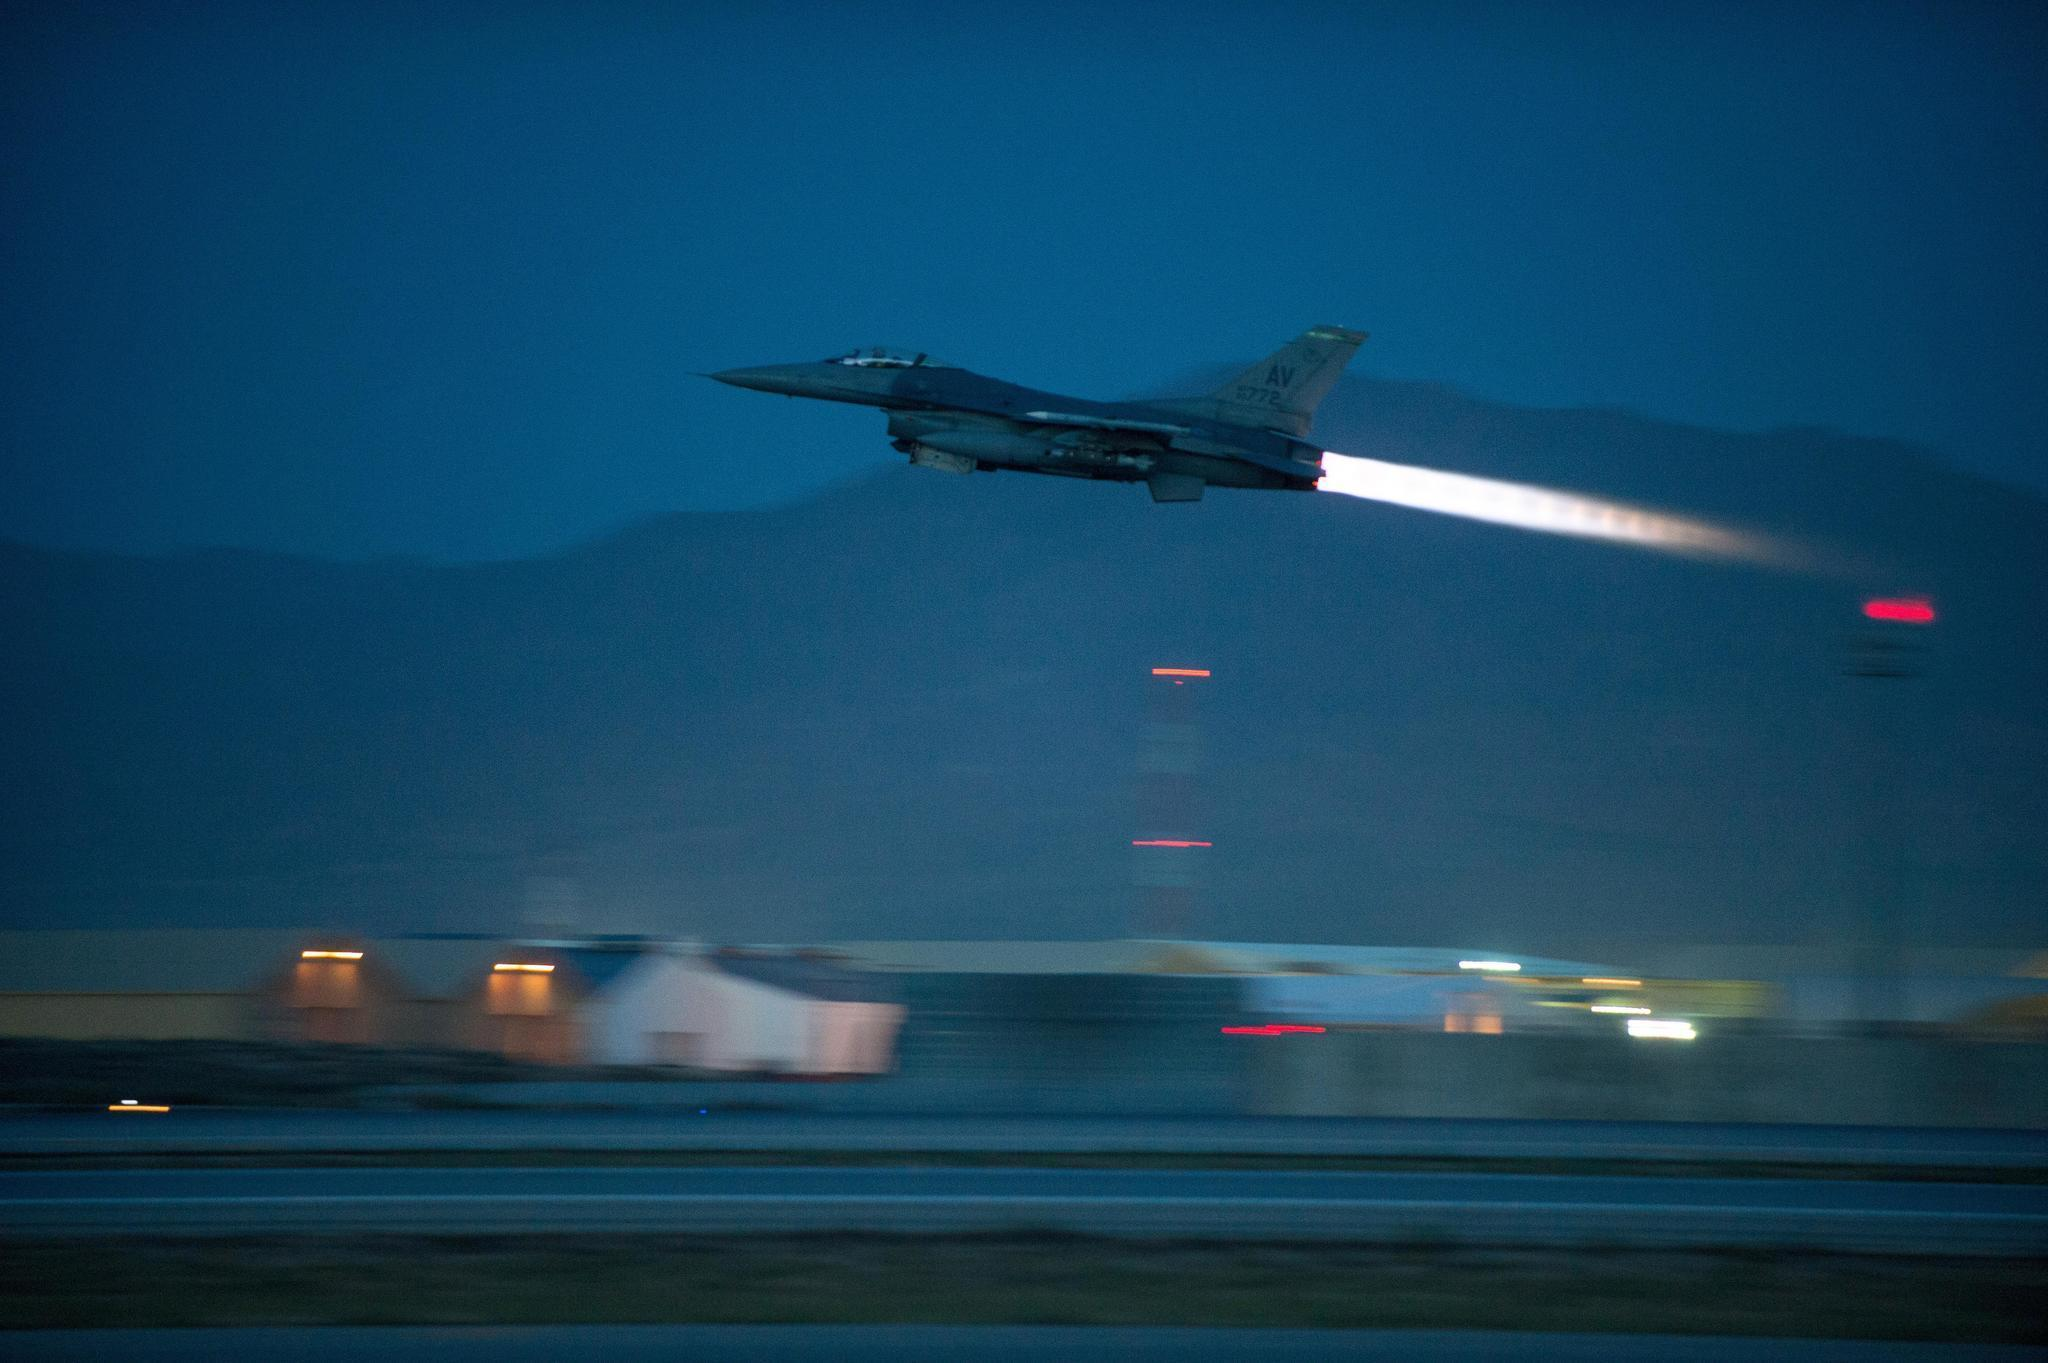 taliban s deadly onslaught across afghan provinces draws increased taliban s deadly onslaught across afghan provinces draws increased u s air power la times